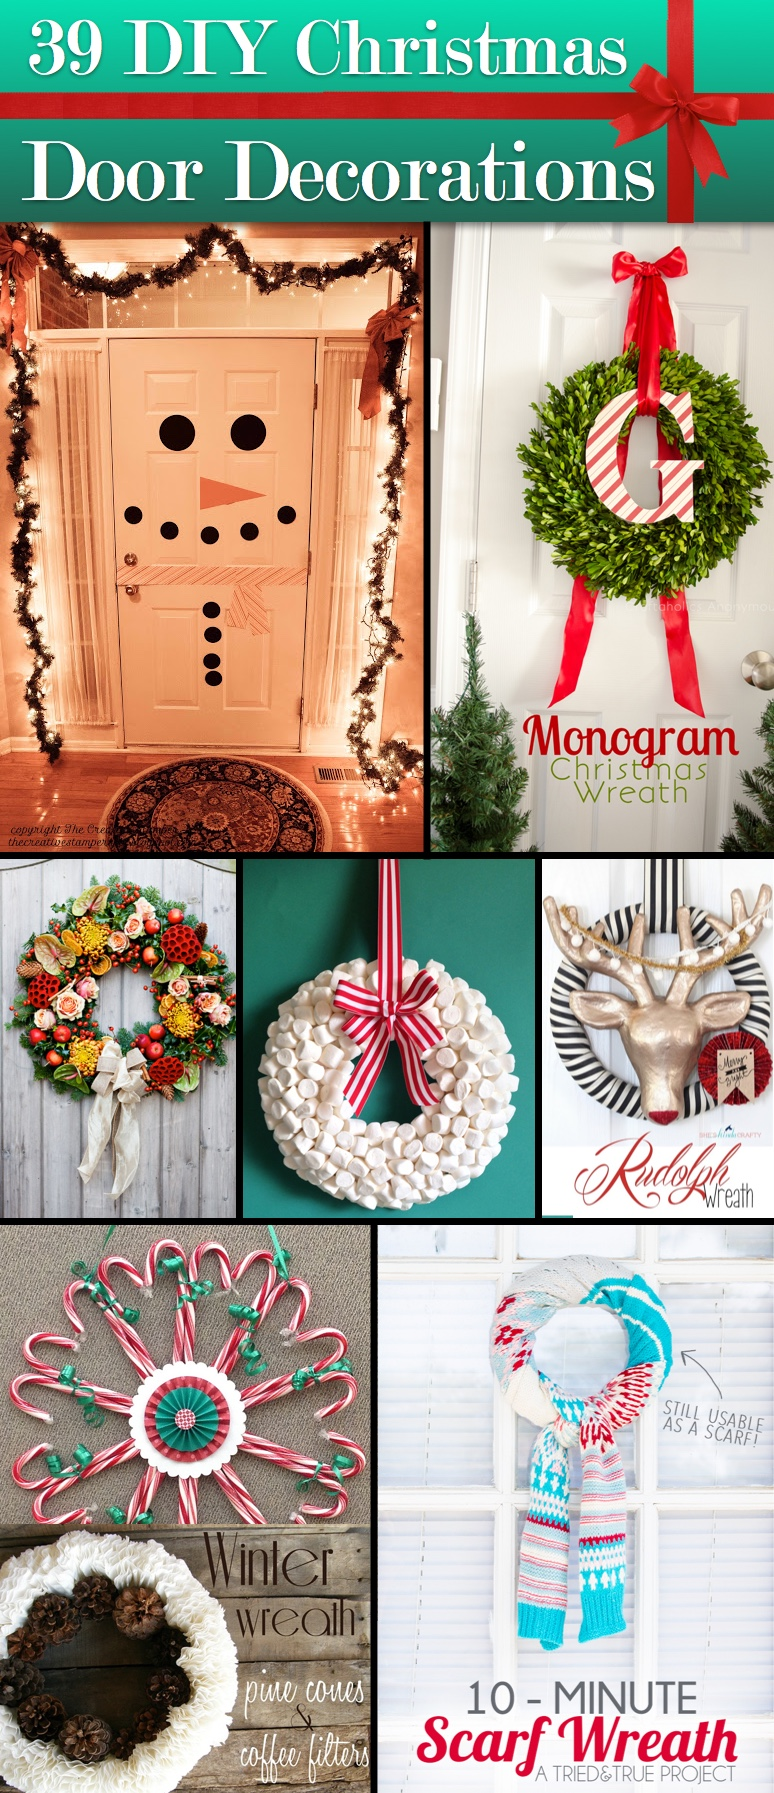 39 breathtaking diy christmas door decorations that truly scream merry xmas